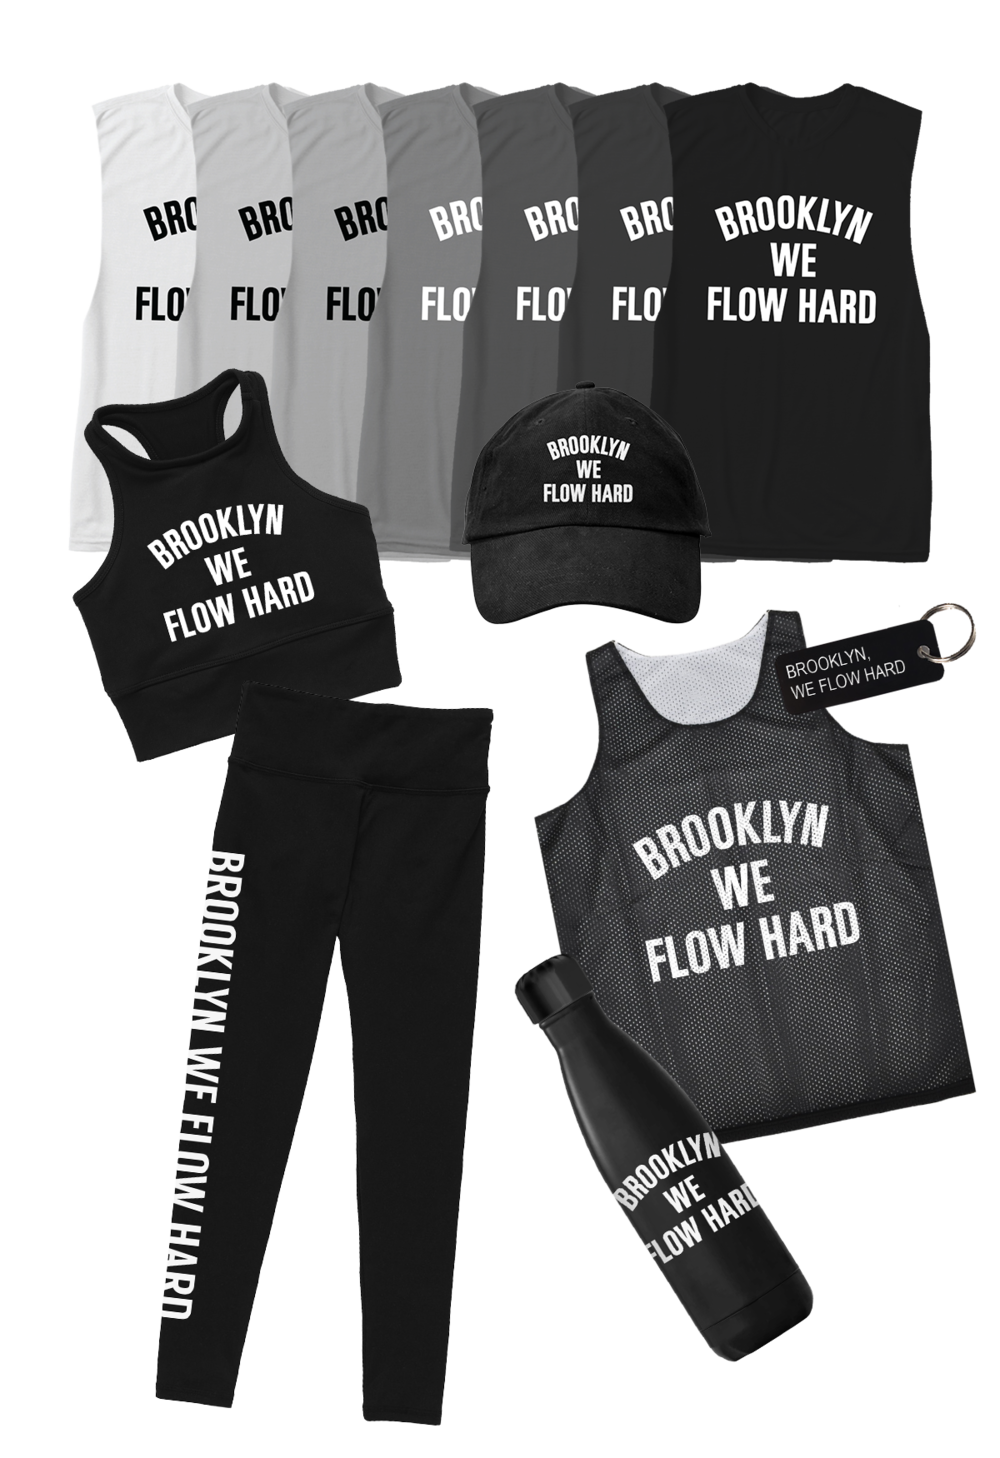 EXCLUSIVE_MERCH.png